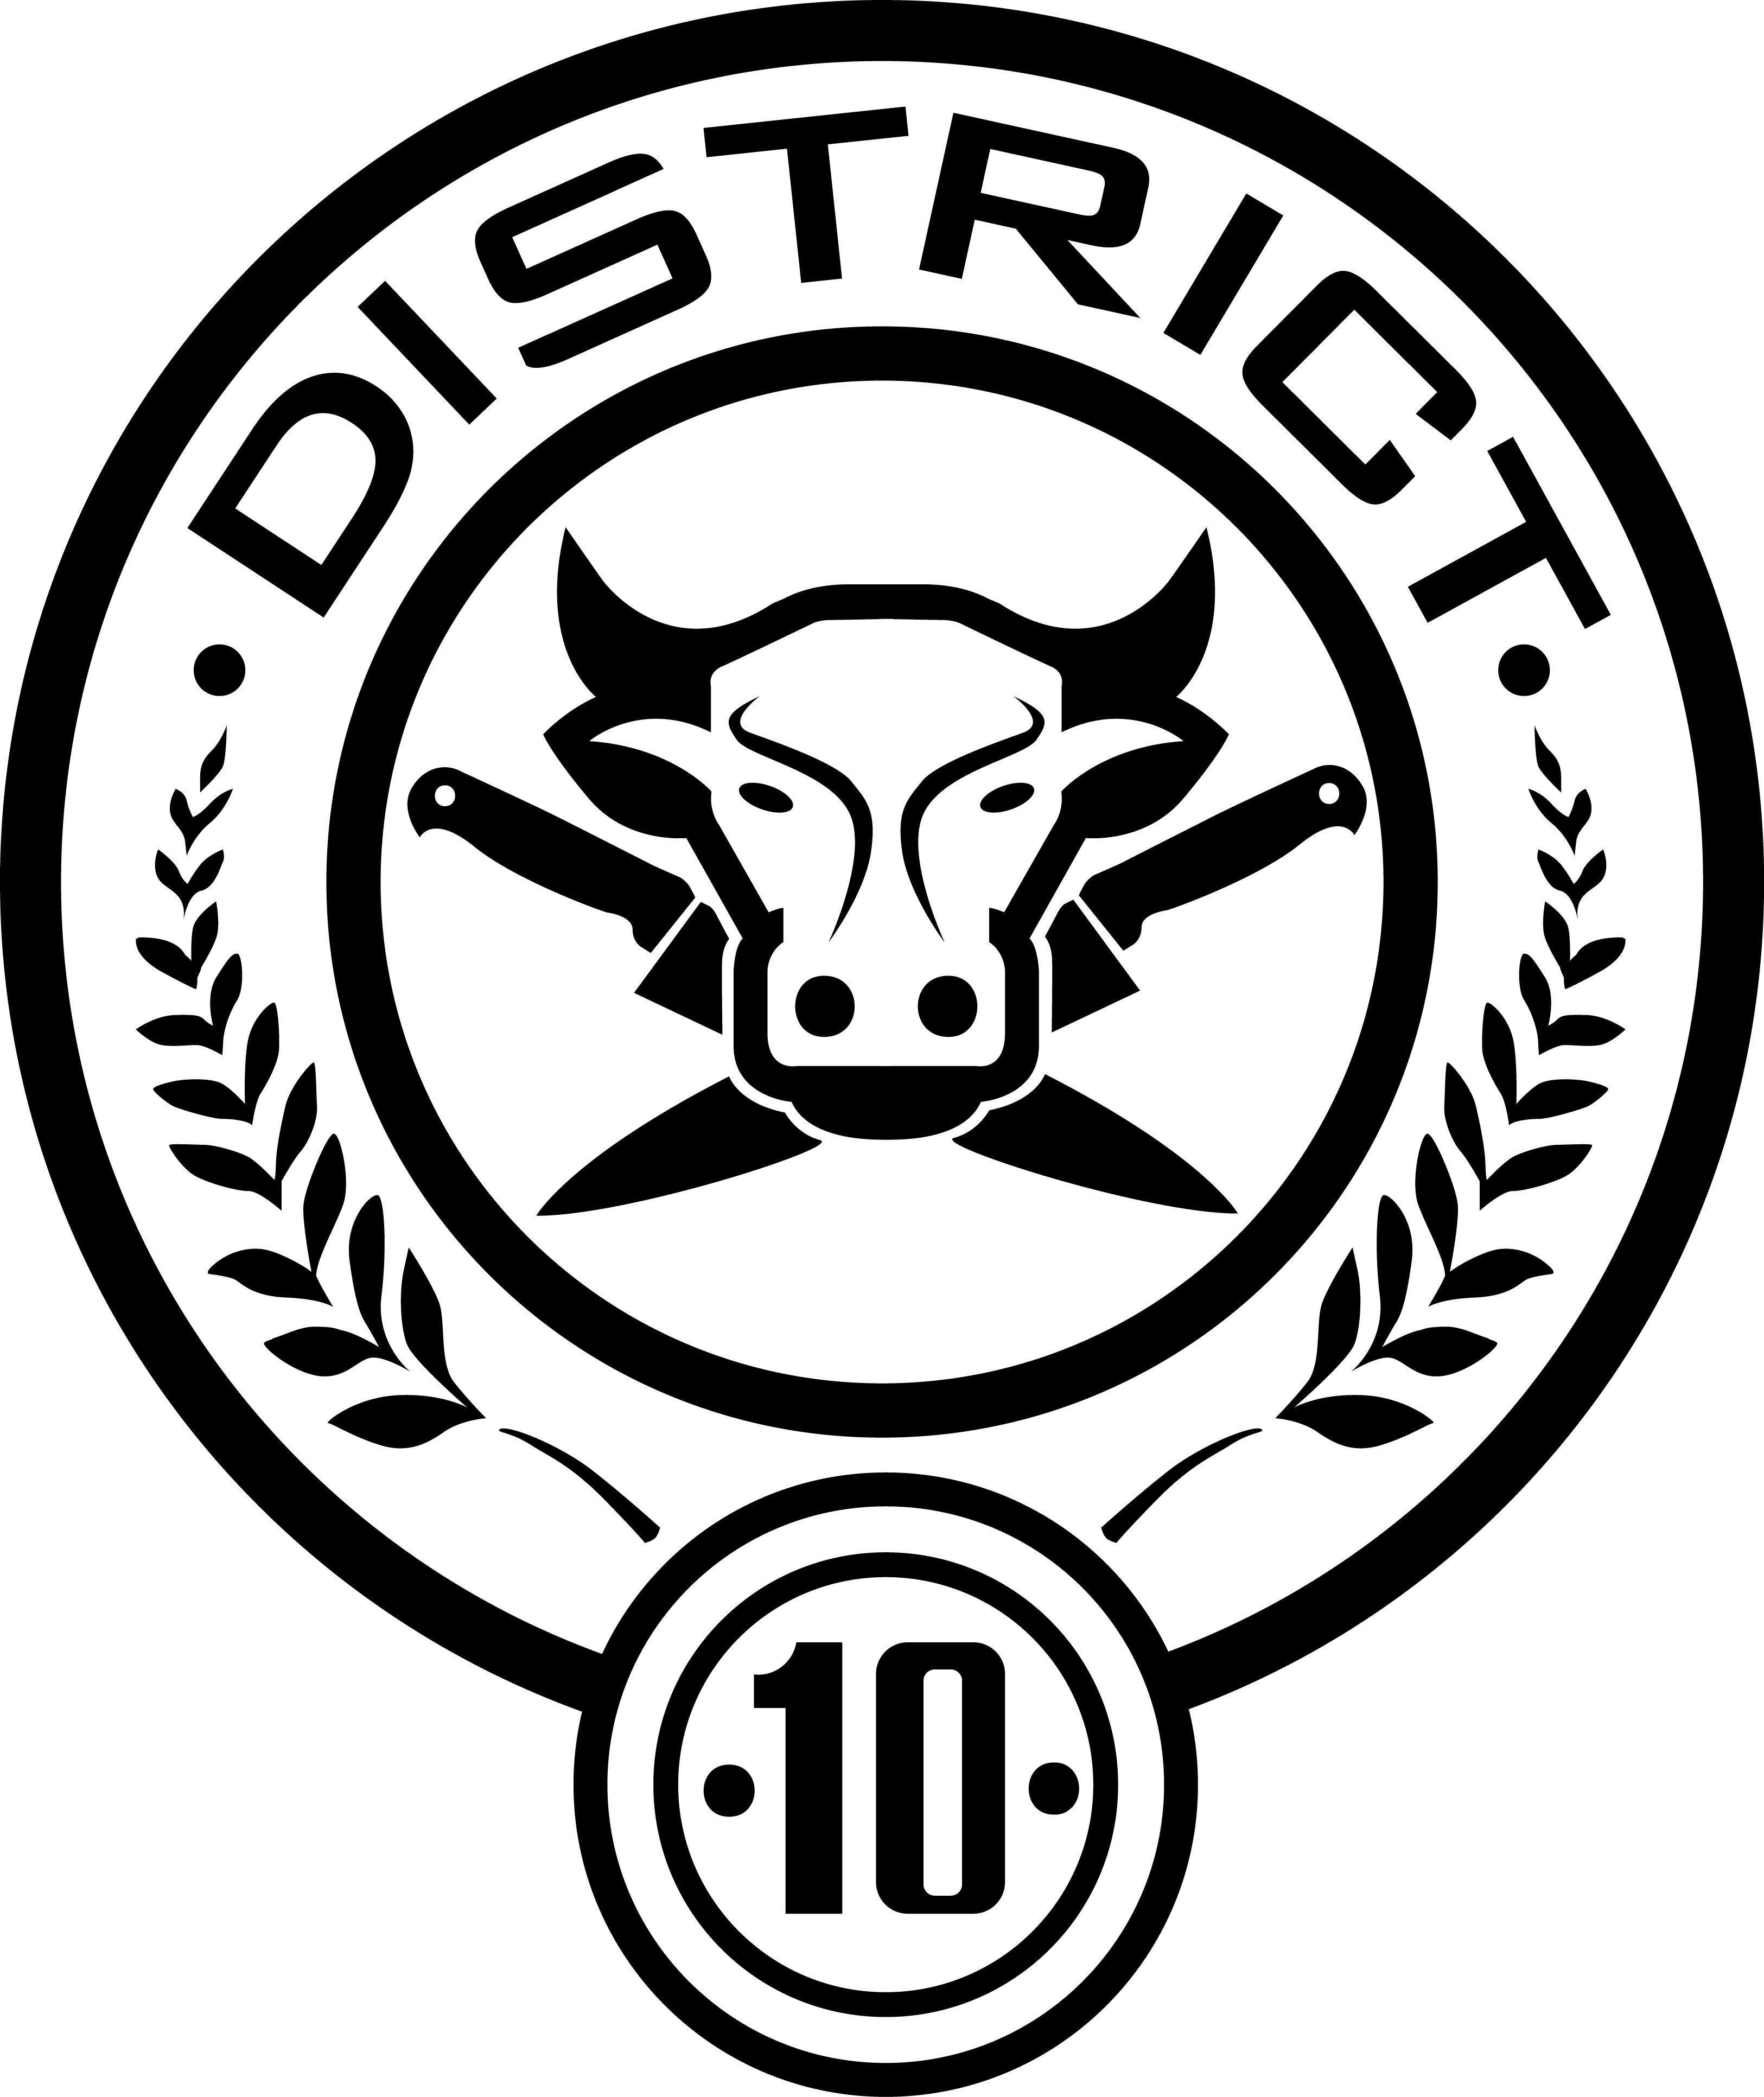 District 10 seal by trebory6iantart on deviantart images for hunger games district 9 buycottarizona